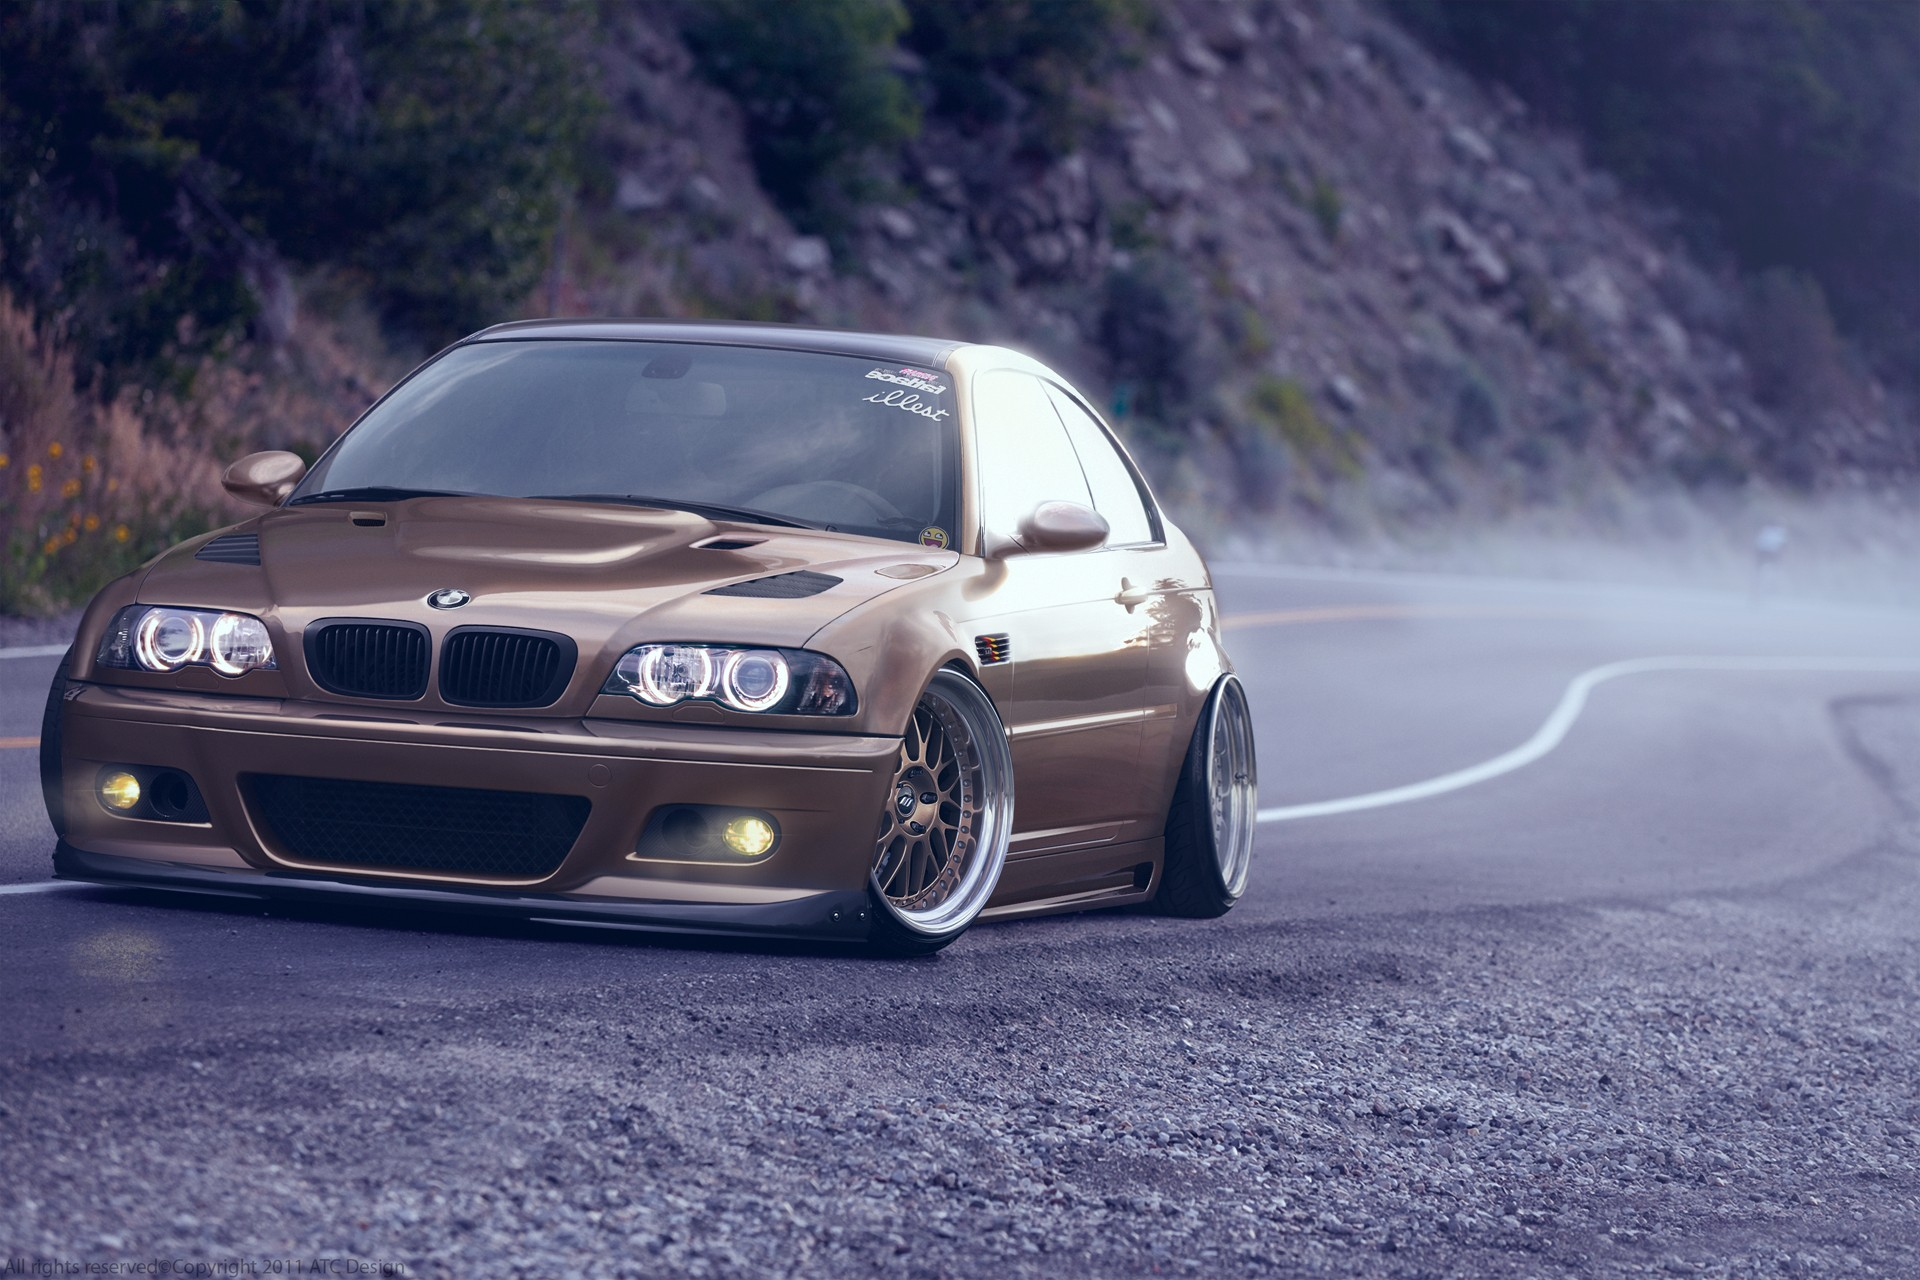 download BMW E46 HD Wallpapers Backgrounds [1920x1280] for 1920x1280